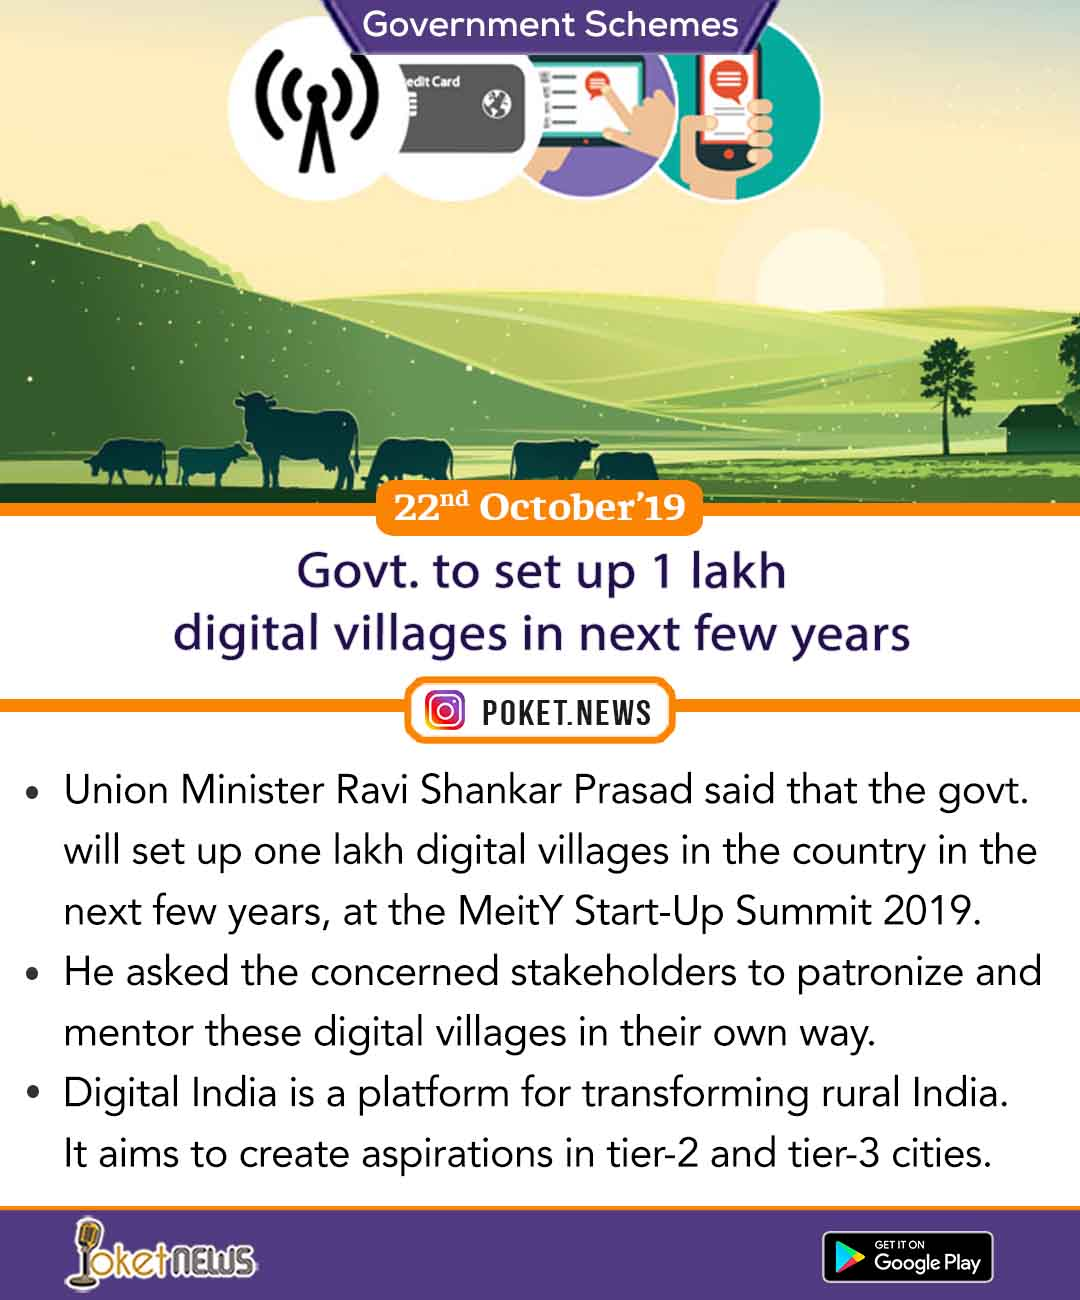 Govt. to set up 1 lakh digital villages in next few years